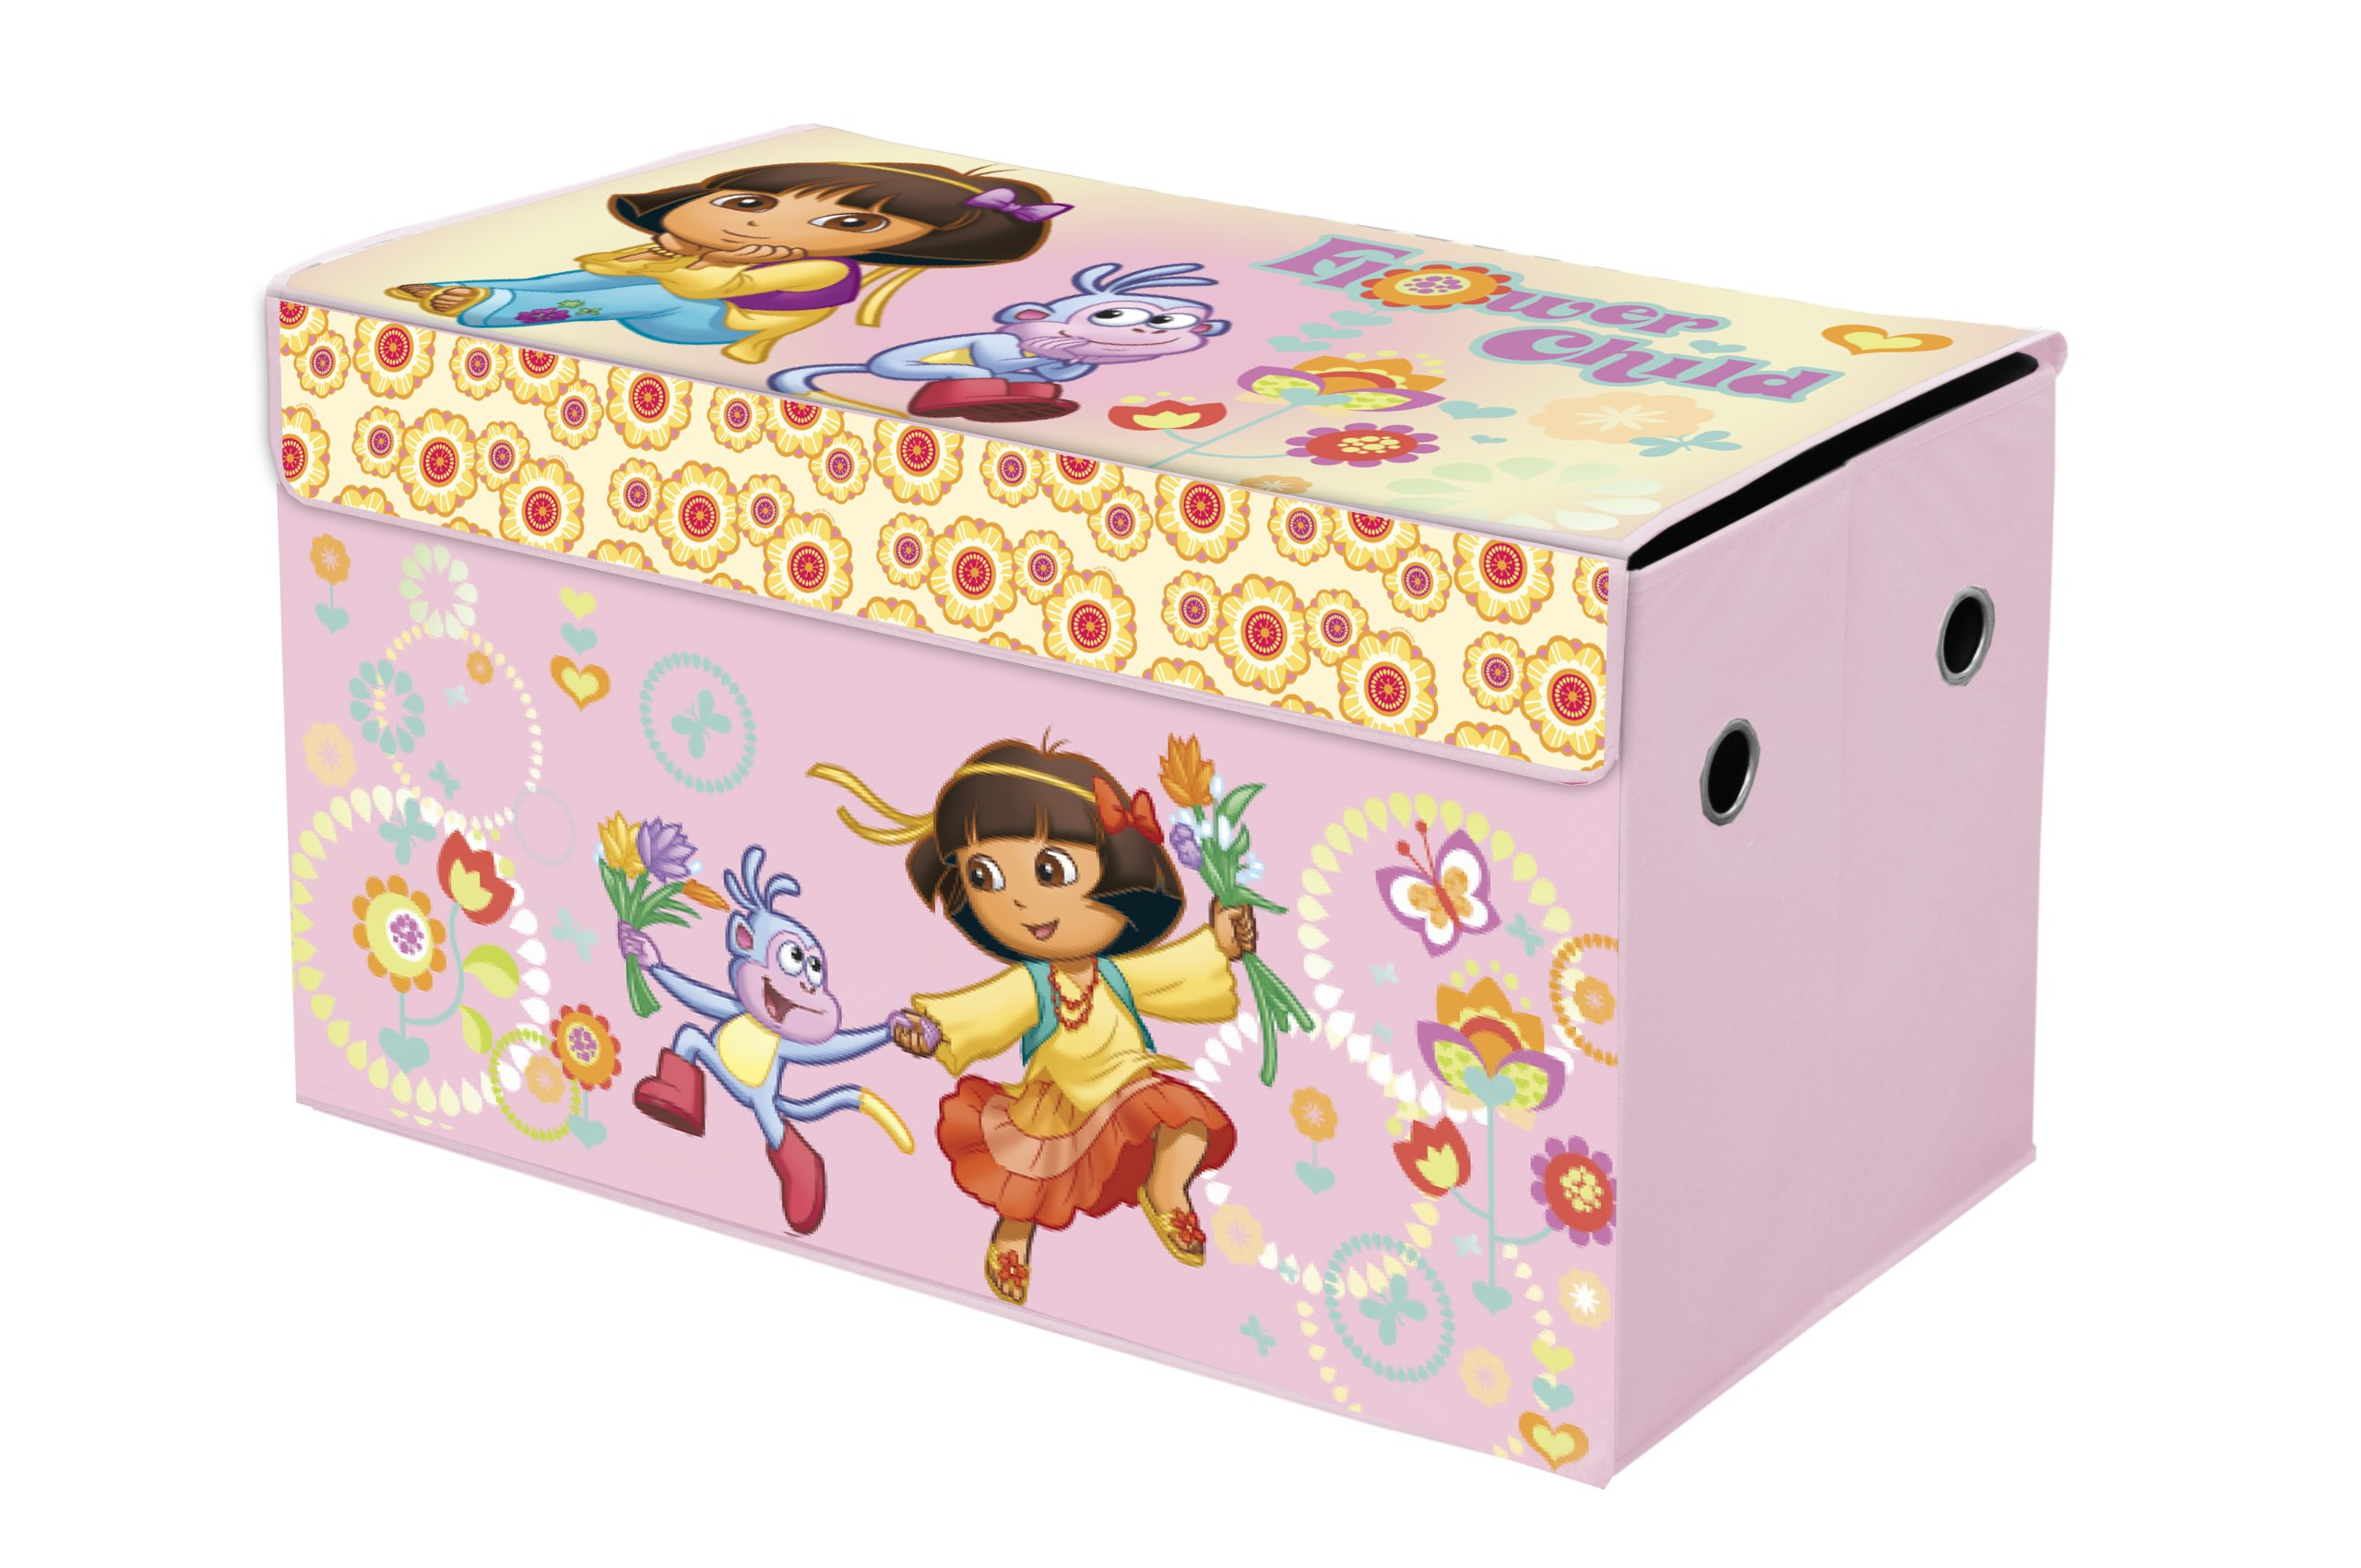 Nickelodeon Dora the Explorer Collapsible Storage Trunk by Nickelodeon